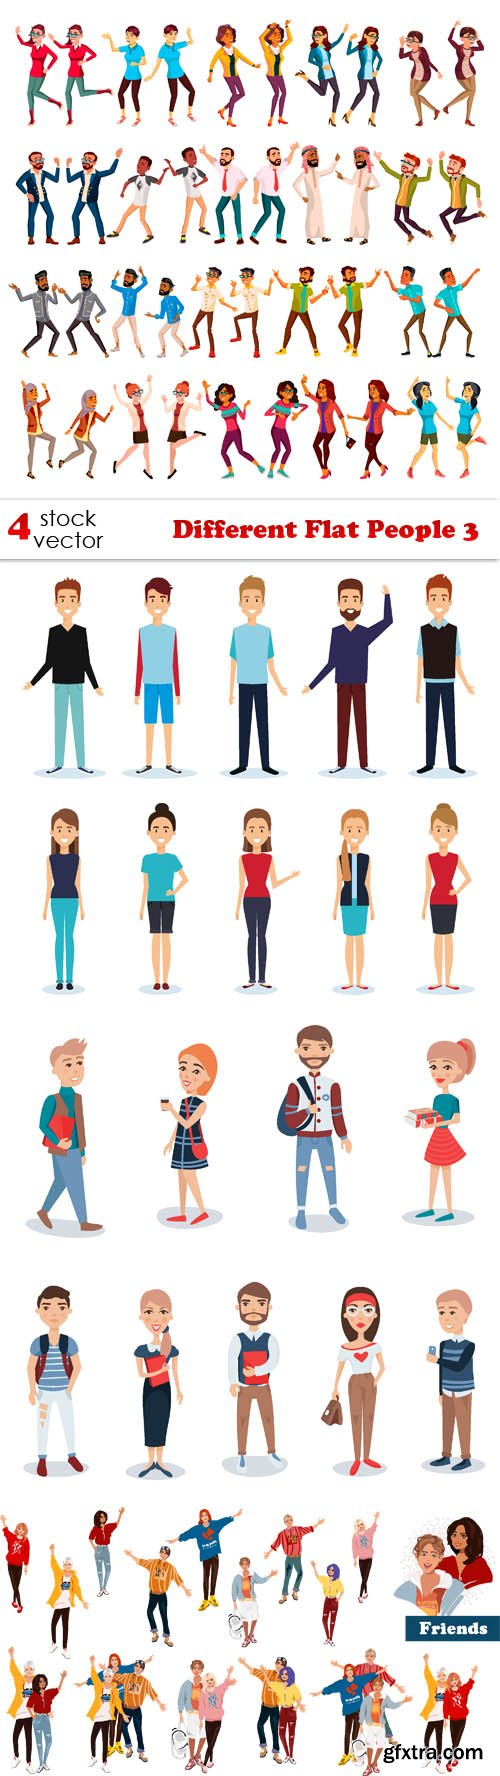 Vectors - Different Flat People 3